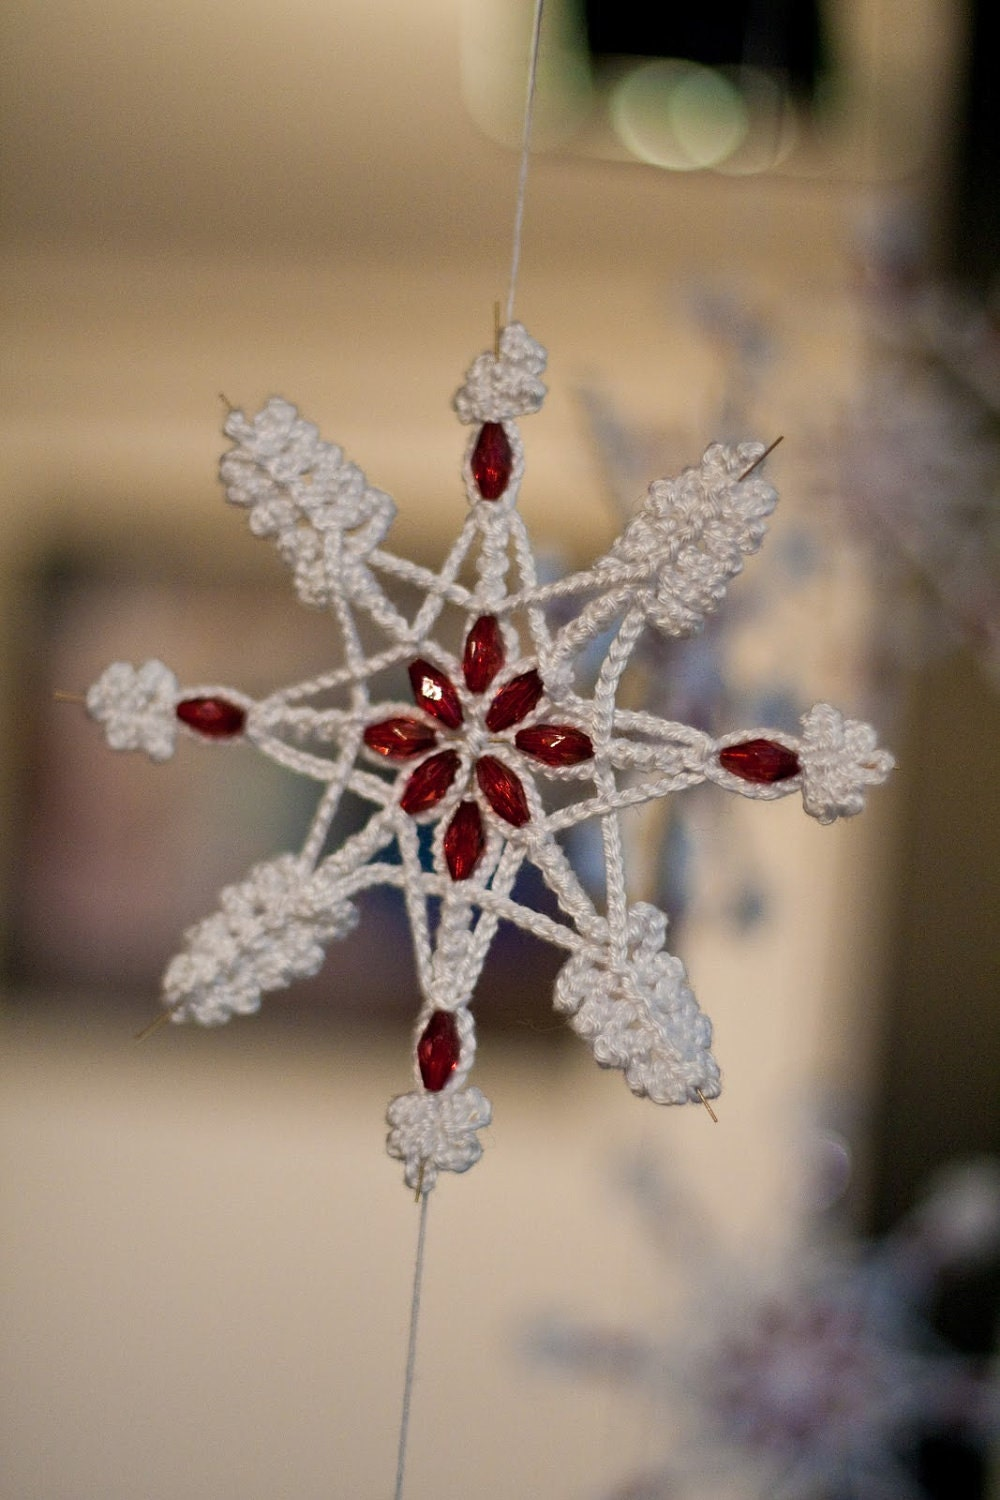 Crochet Christmas Snowflake Red Crystal Beads Wire Star Cotton Yarn Home Decoration Office Decor Gift designed by dodofit on Etsy